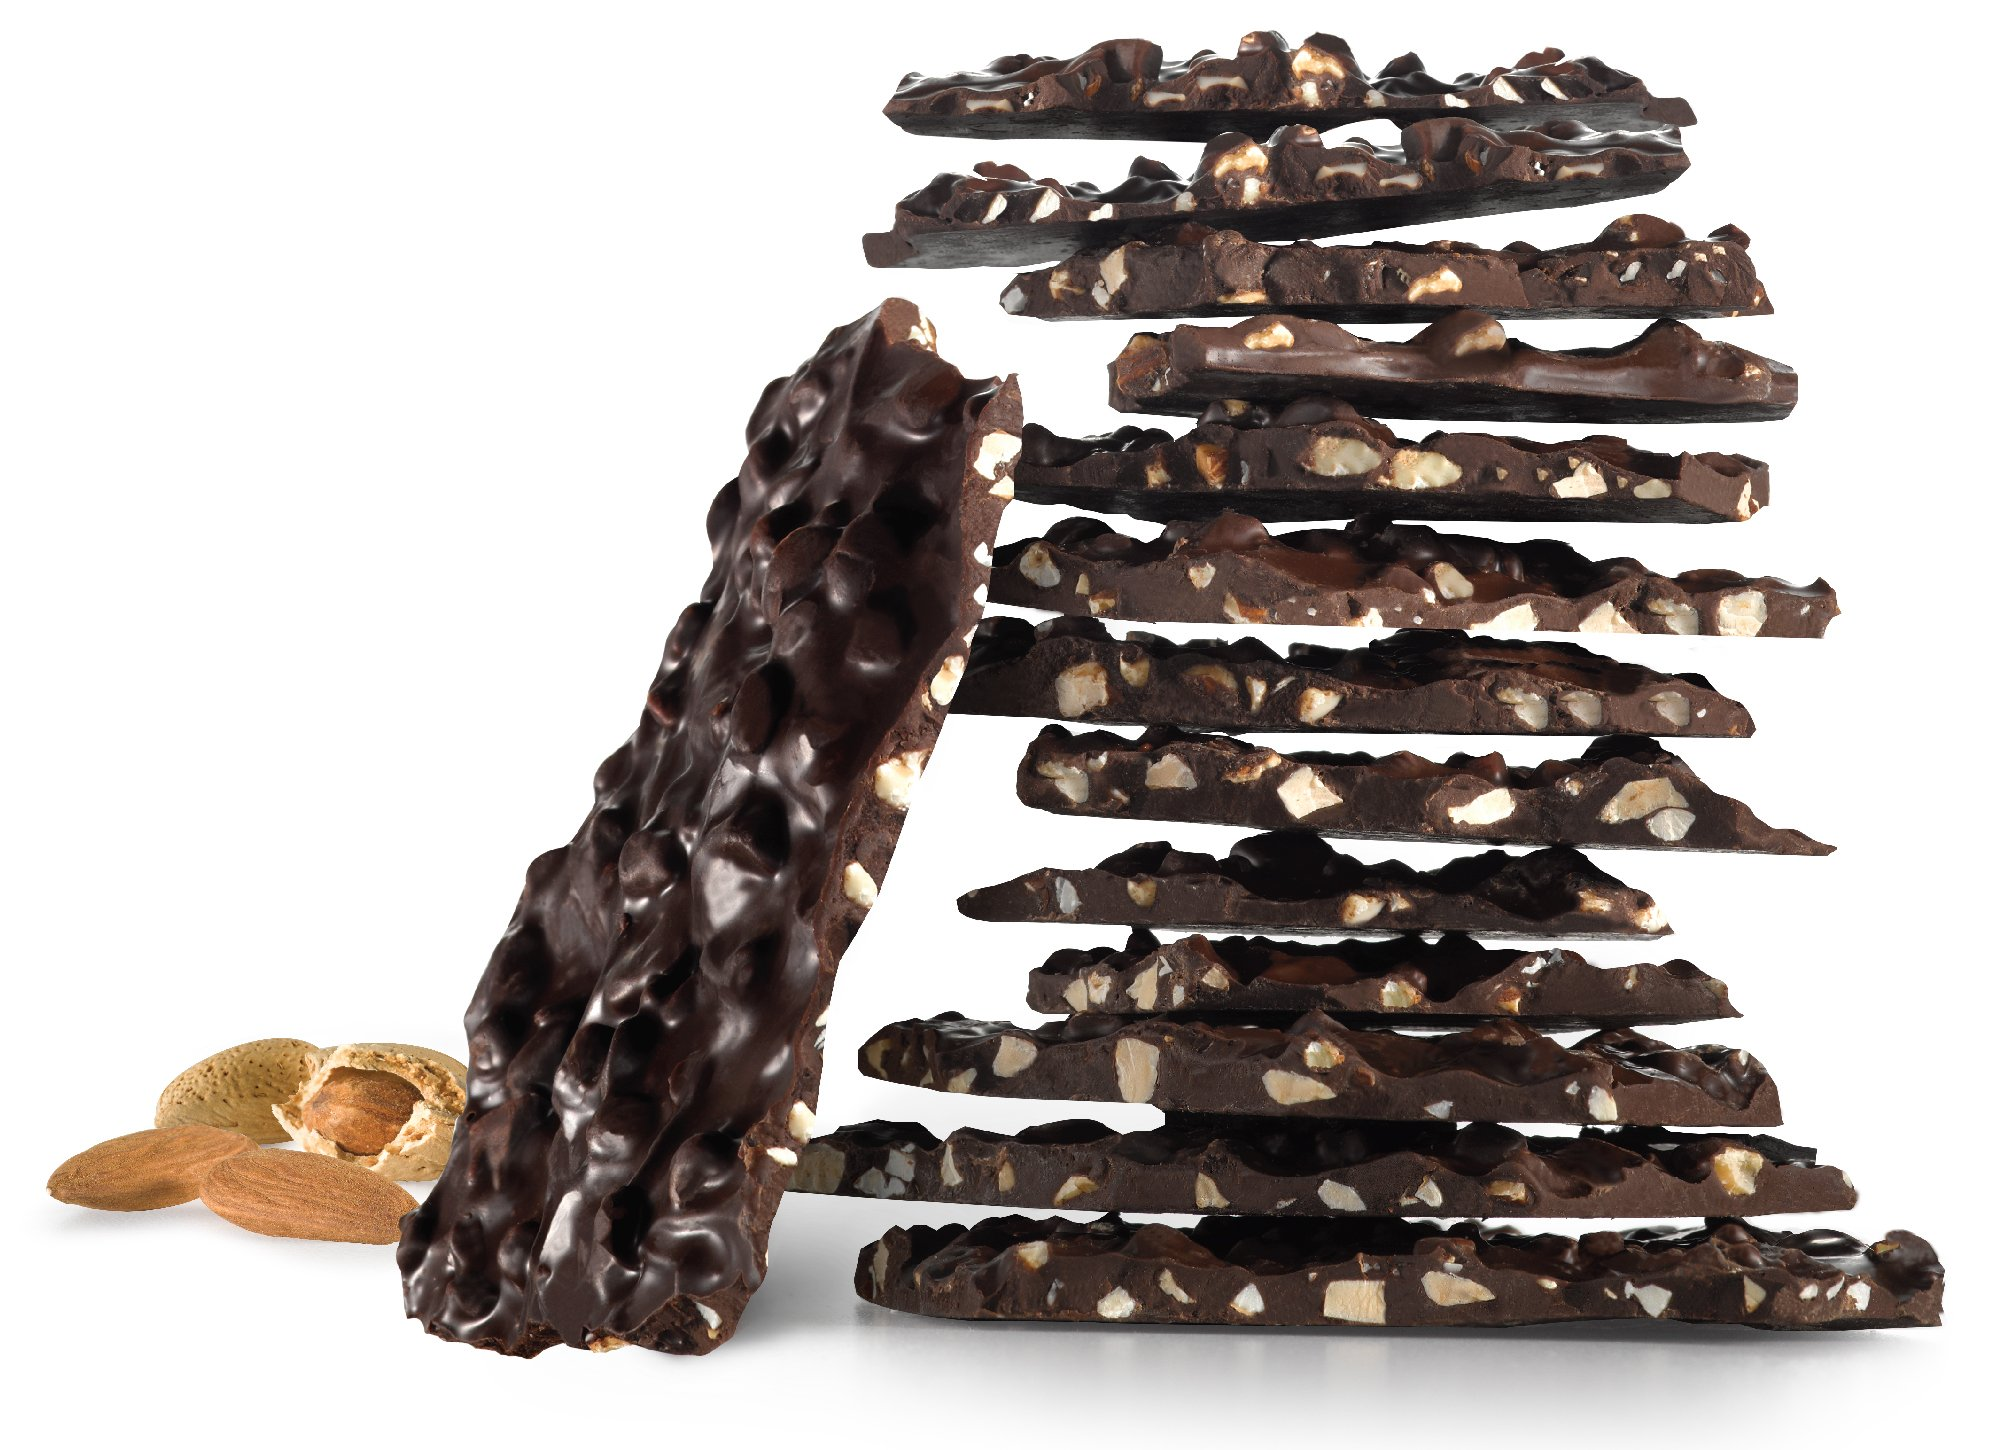 barkTHINS Snacking Dark Chocolate, Almond with Sea Salt, 4.7 Ounce by barkTHINS (Image #3)